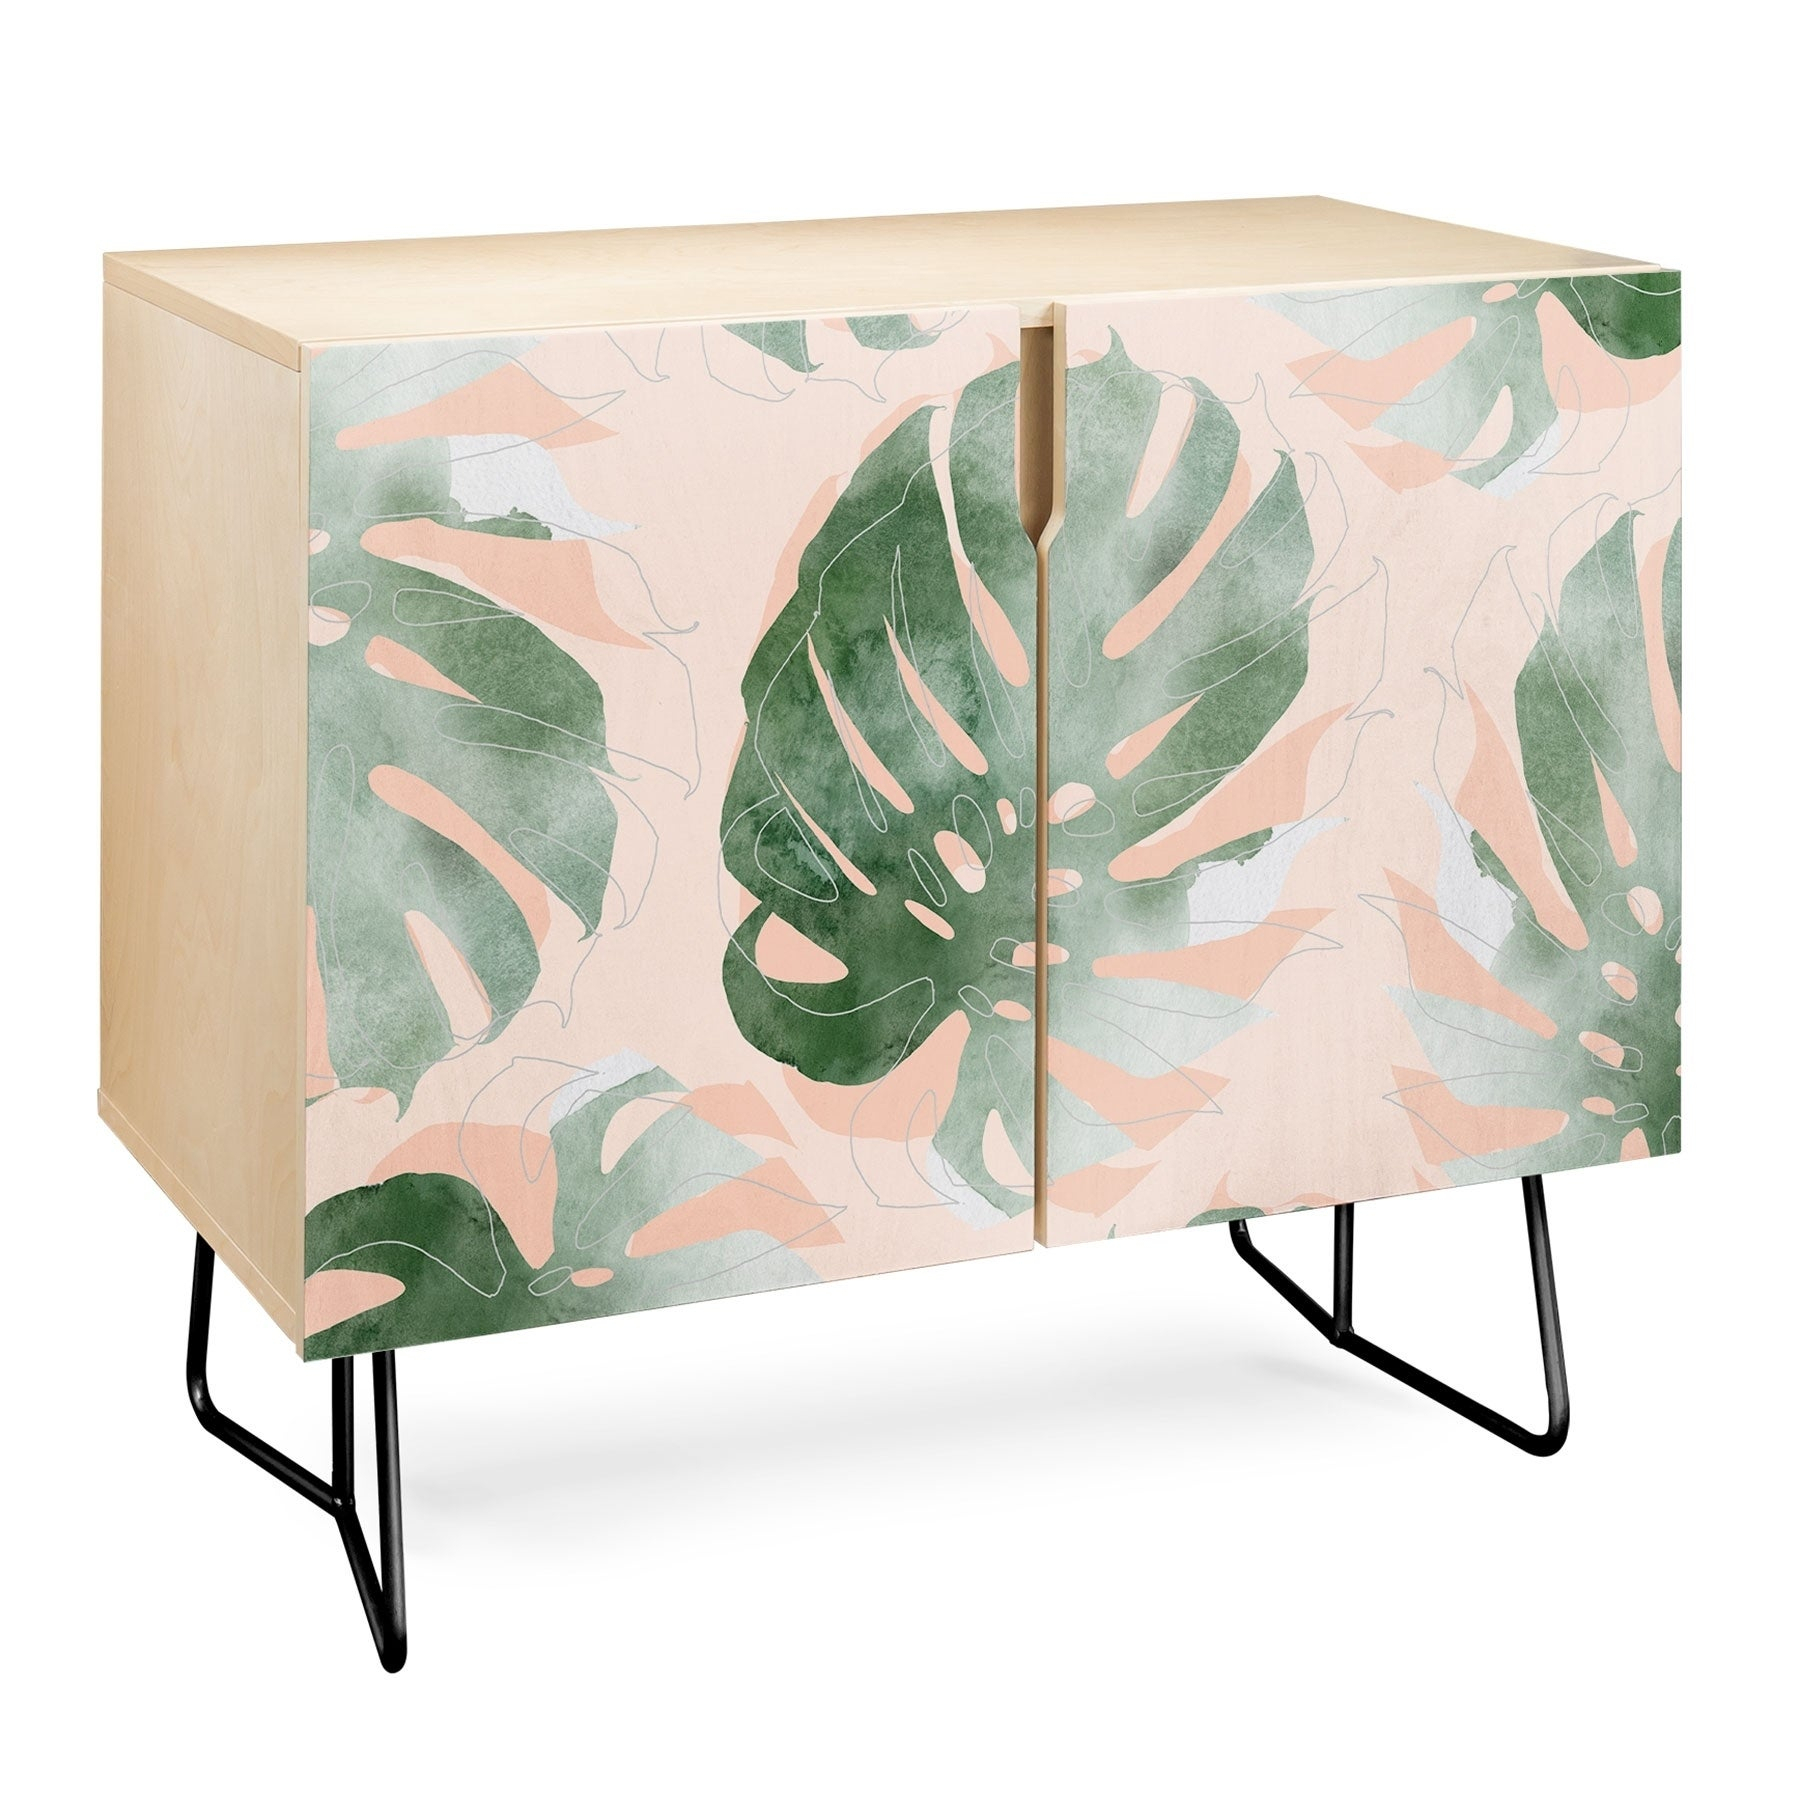 Deny Designs Bohemian Monstera Credenza (Birch Or Walnut, 2 Leg Options) Throughout Oenomel Credenzas (Gallery 26 of 30)